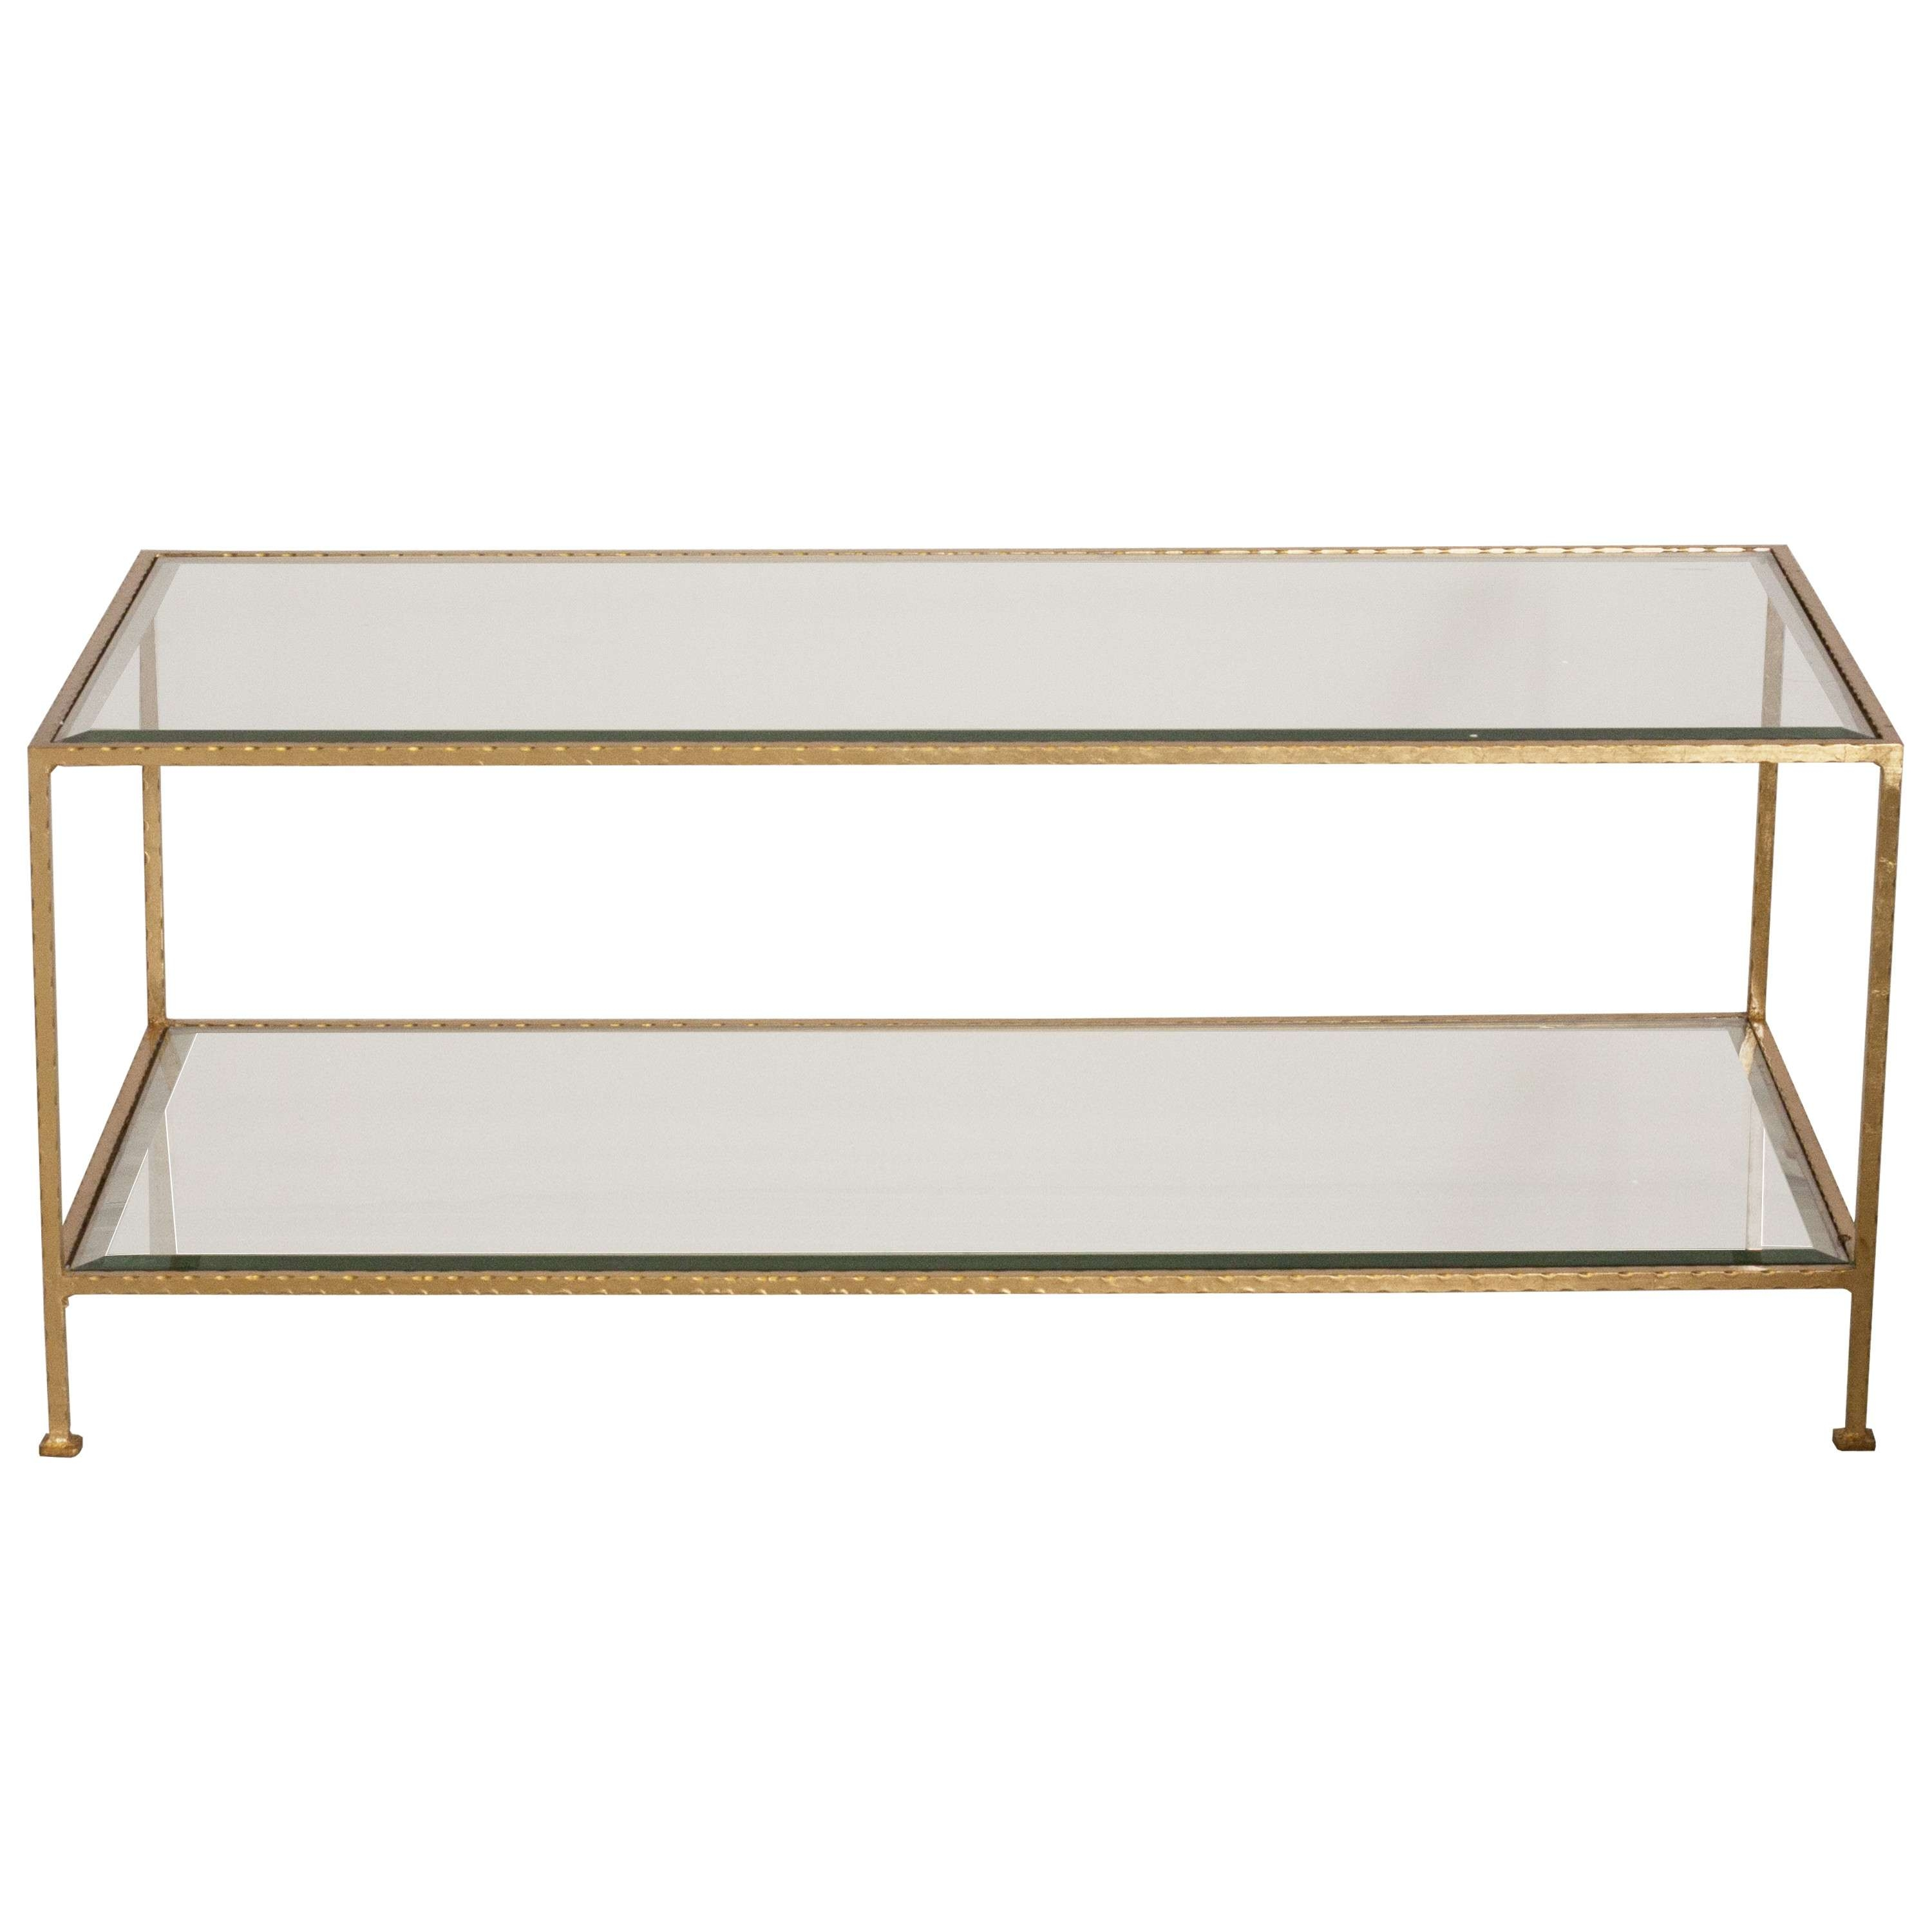 Decorations : Coffee Table Contemporary Stainless Steel Glass In Well Known Glass Steel Coffee Tables (View 5 of 20)